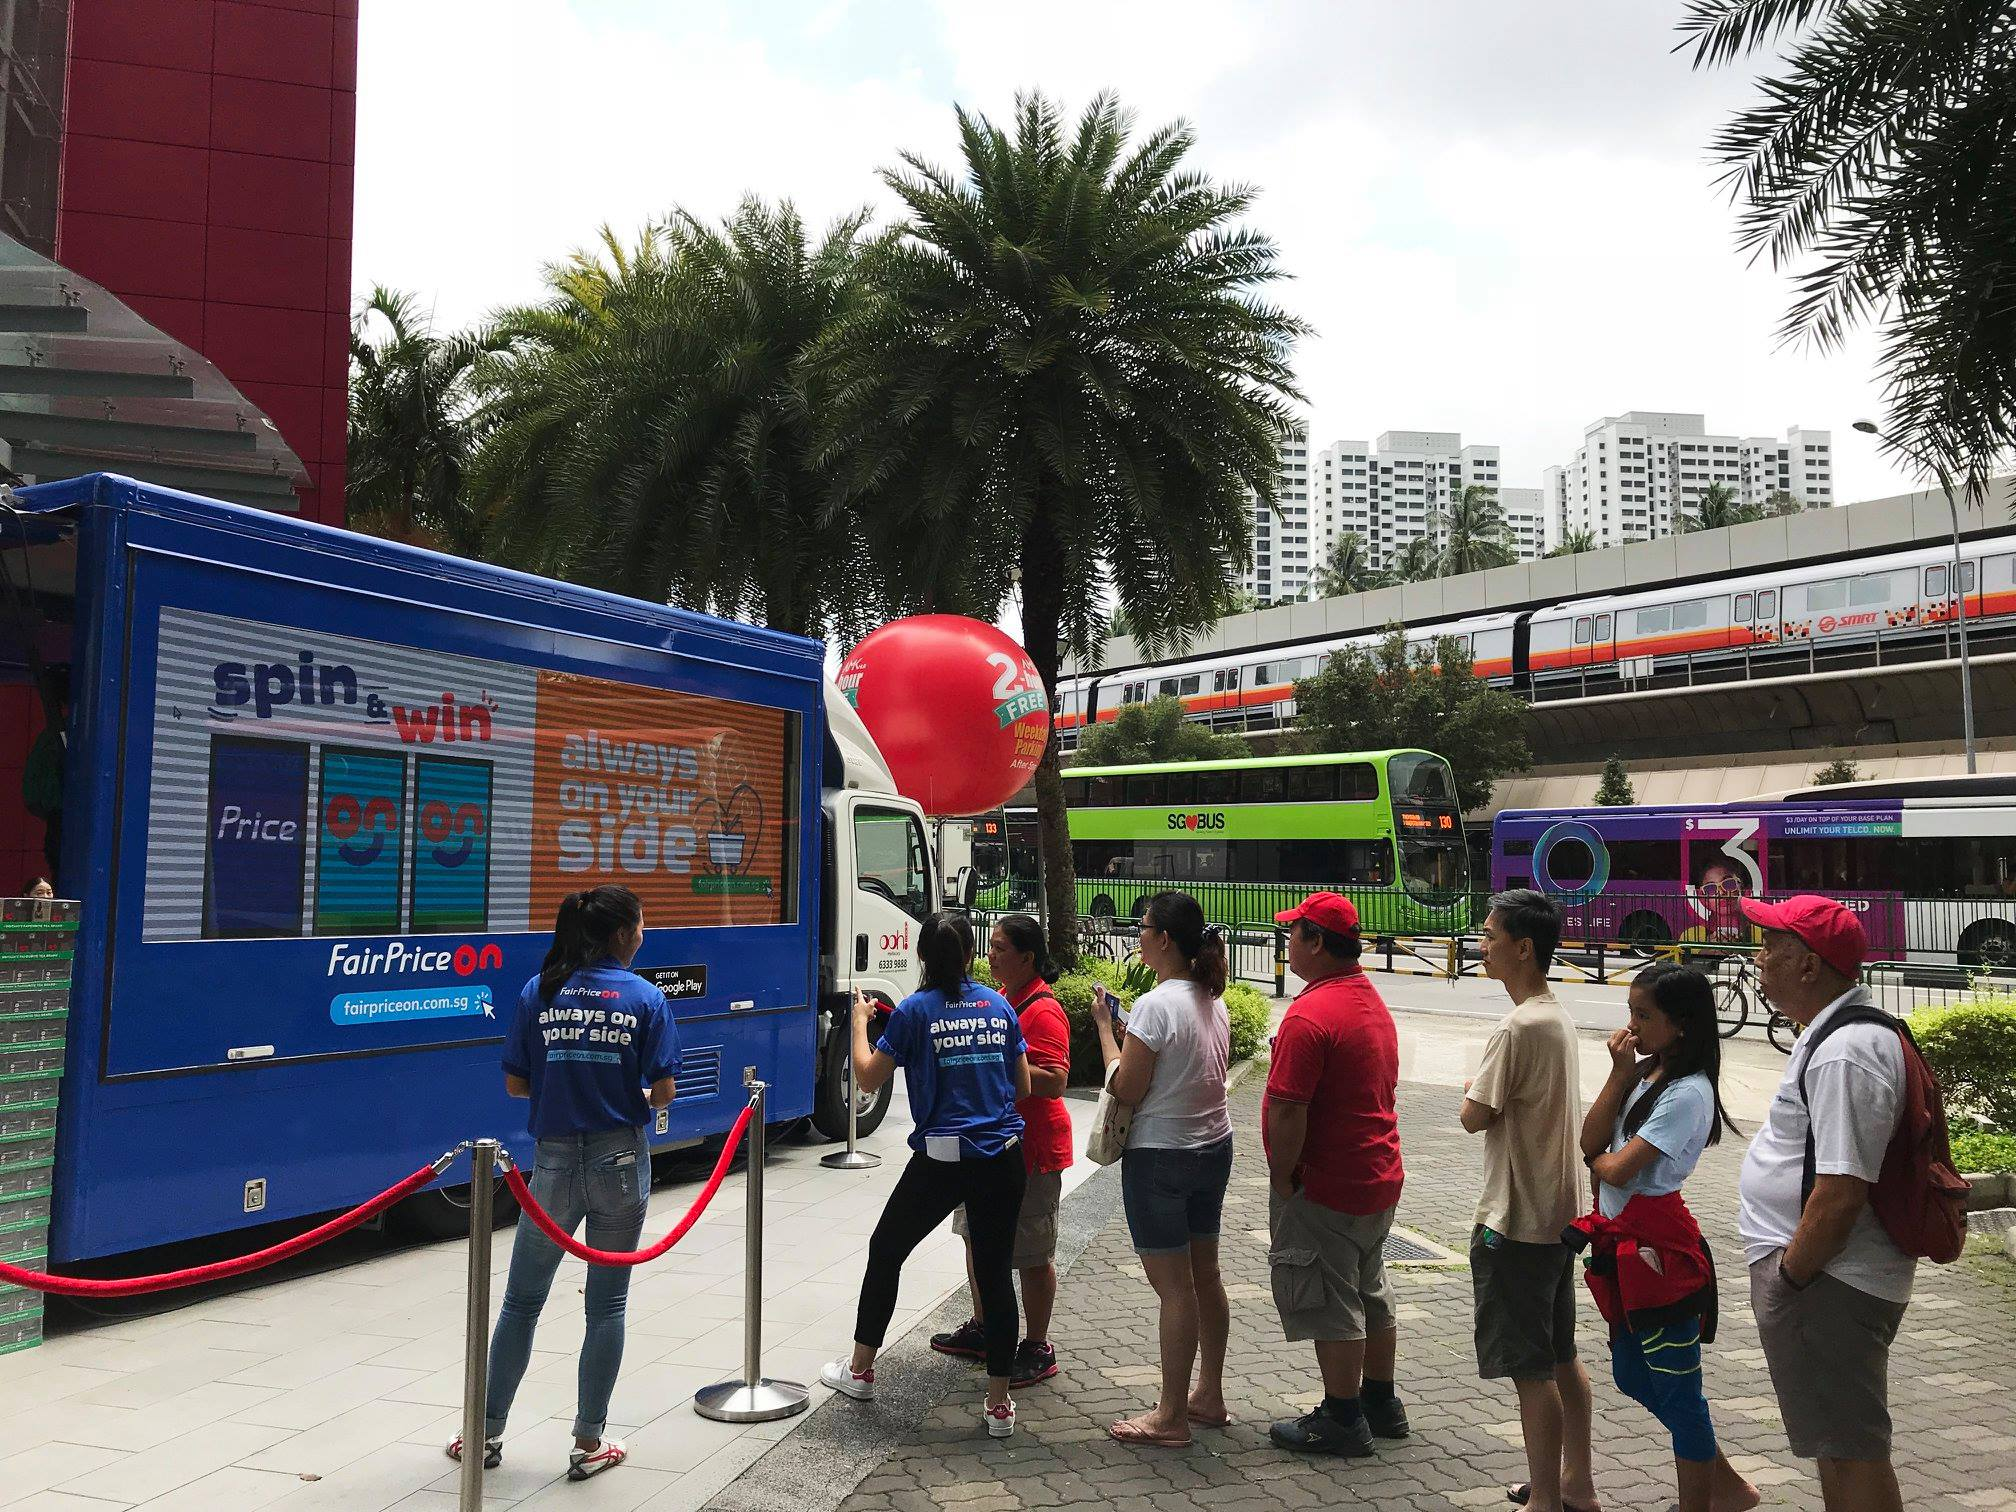 People queueing for their turn at the Fairprice On Interactive Spin & Win Game